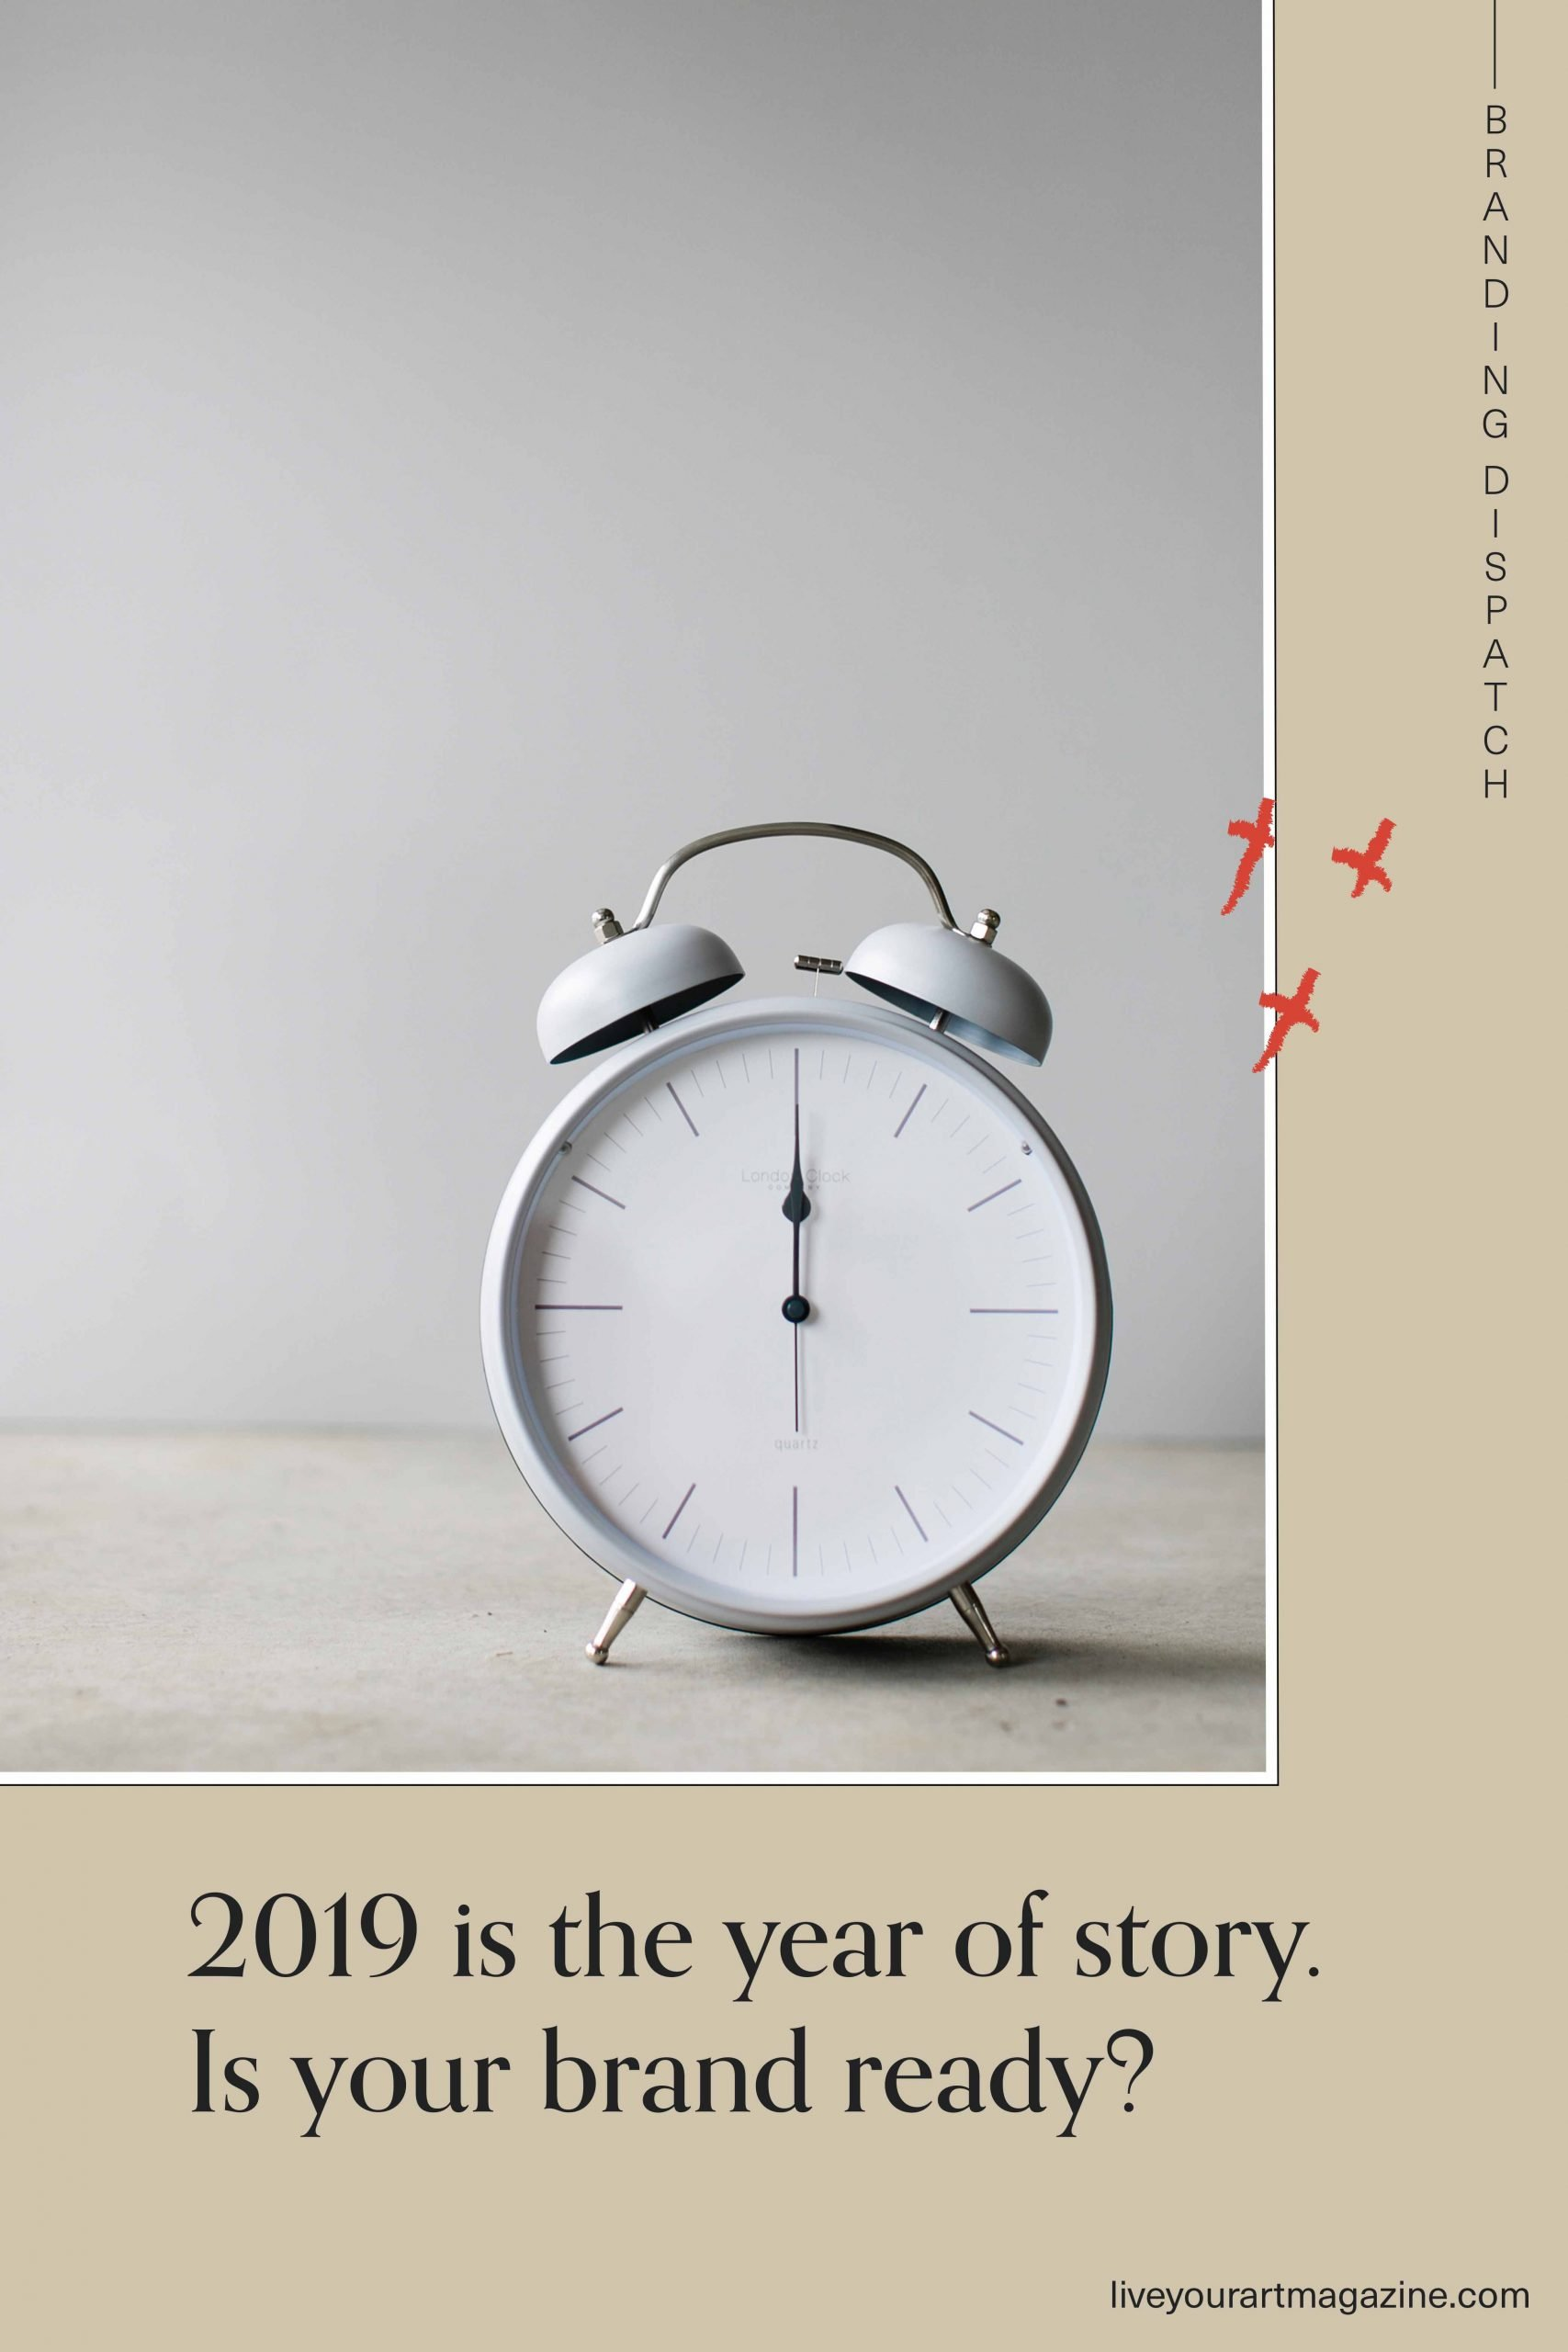 2019 is the year of story. Is your brand ready?